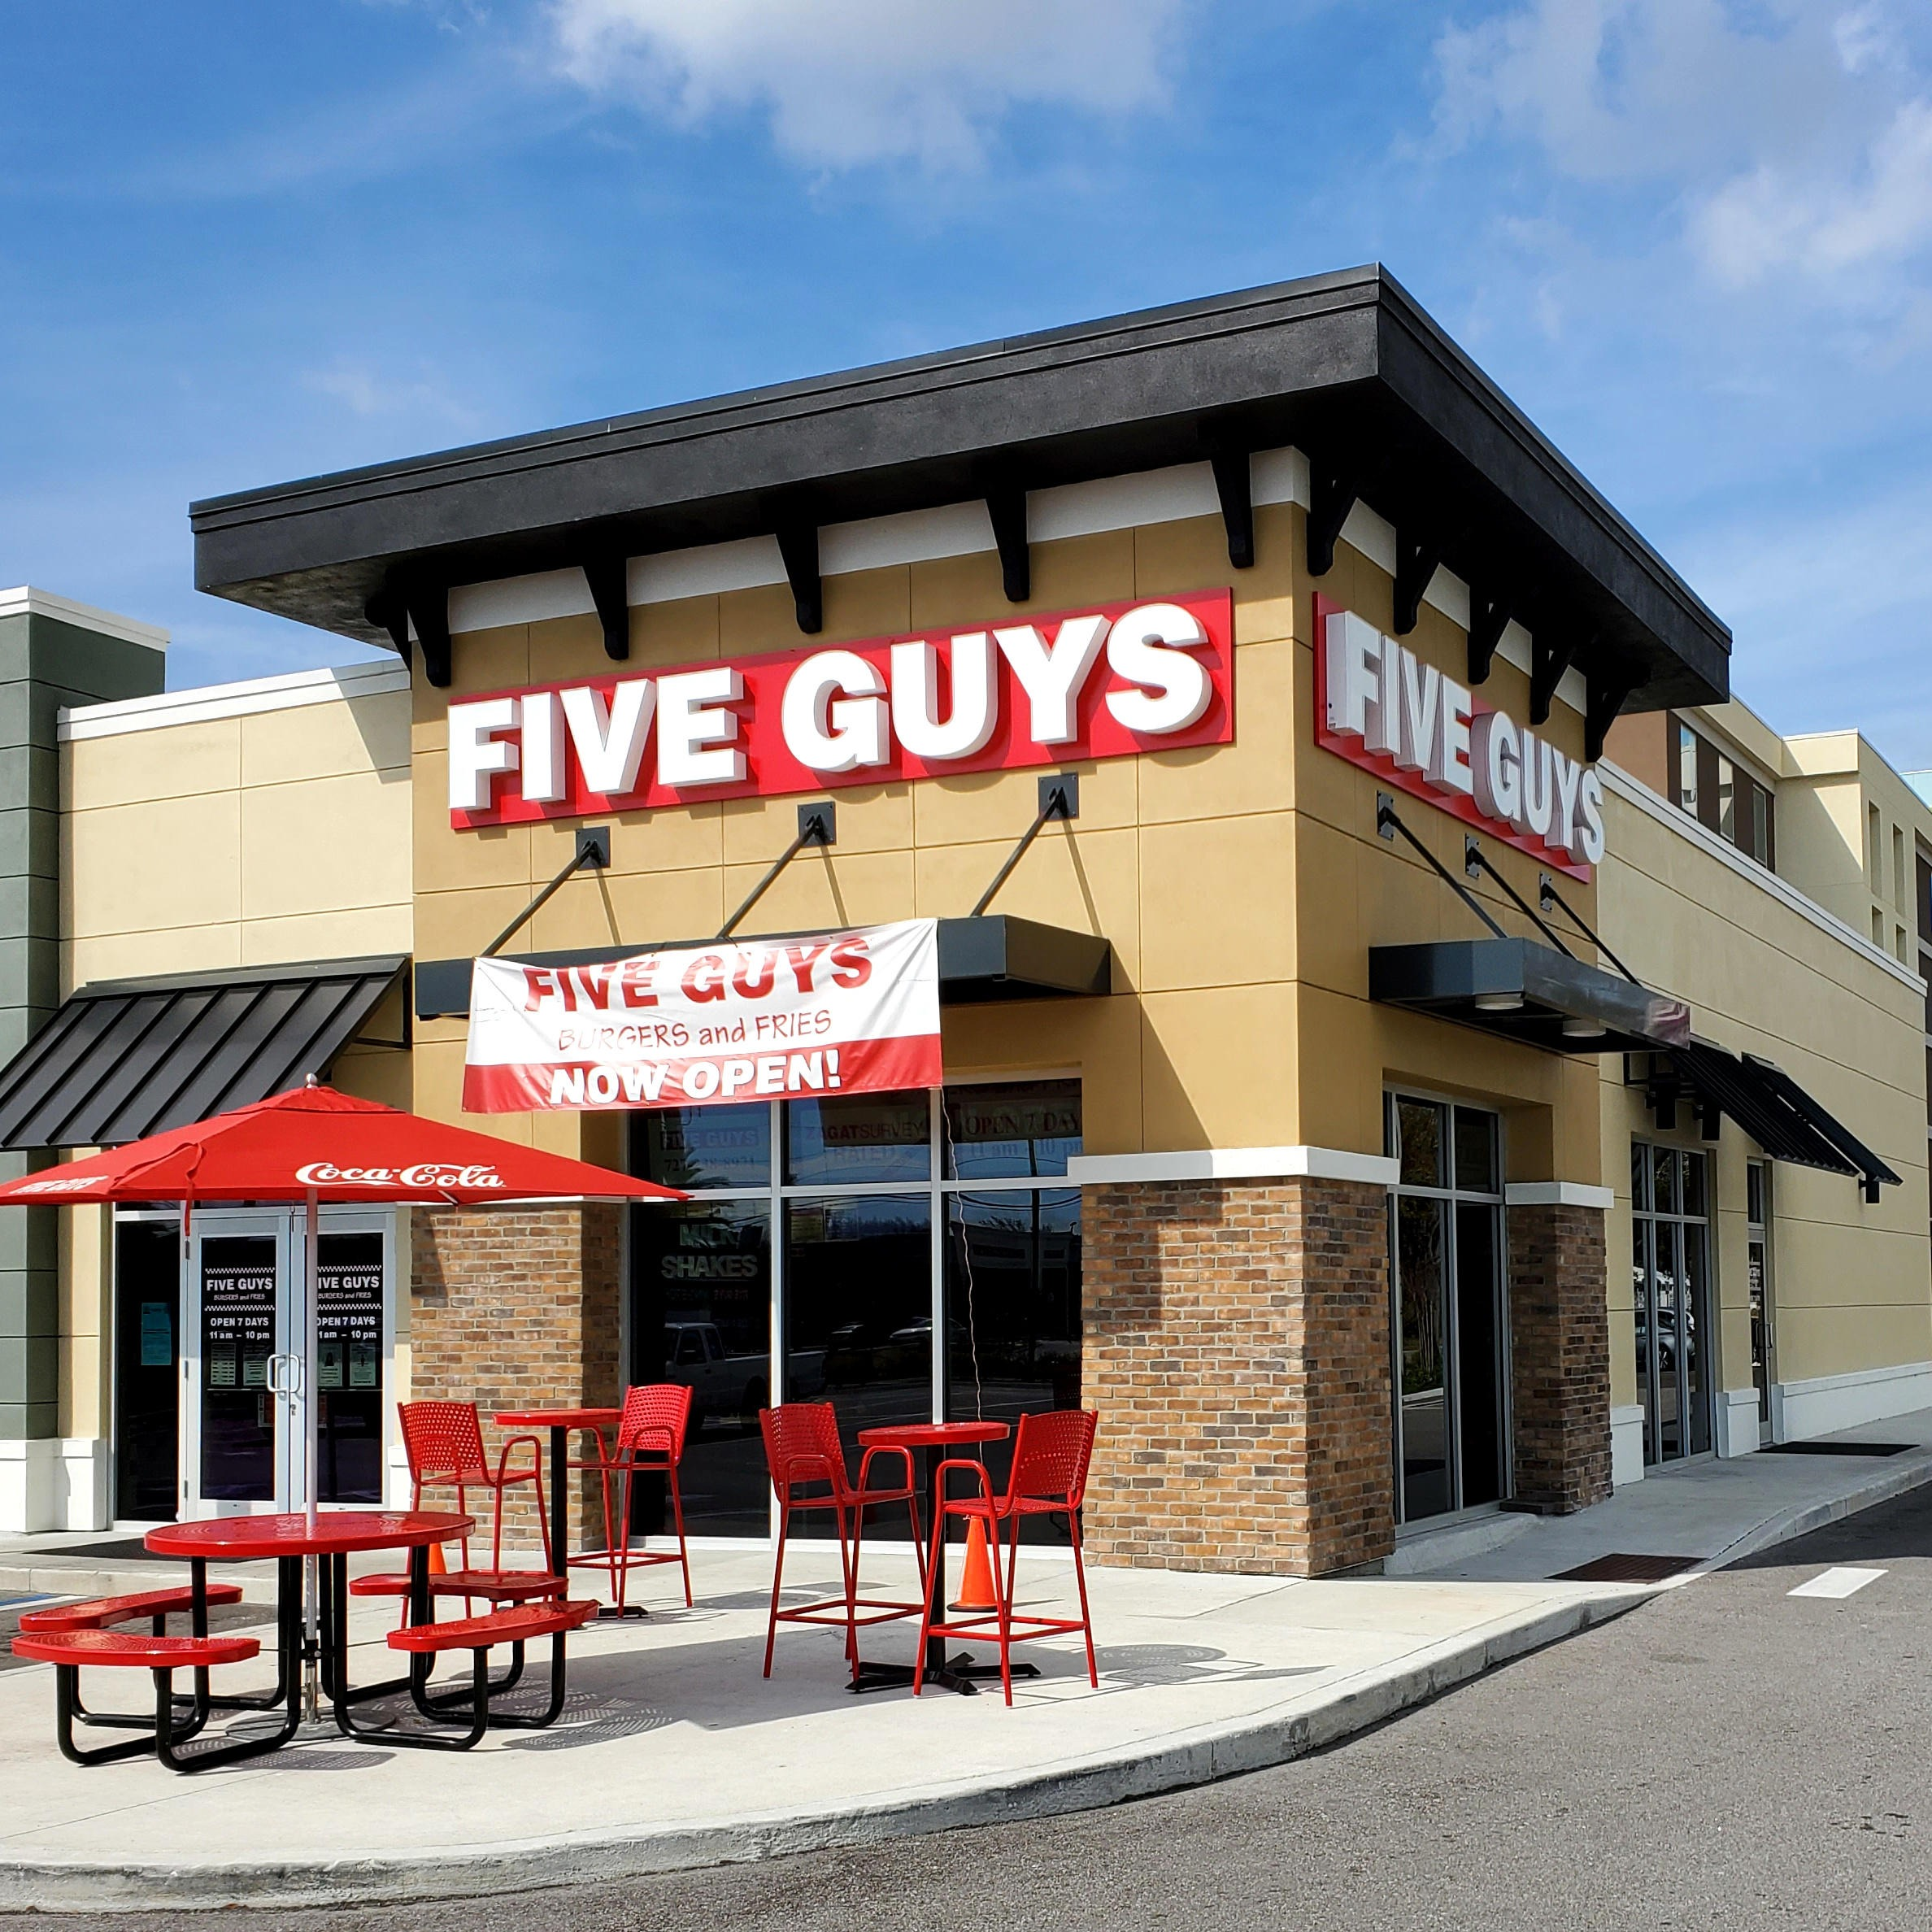 Five Guys at 10125 Ulmerton Rd. in Largo, FL.